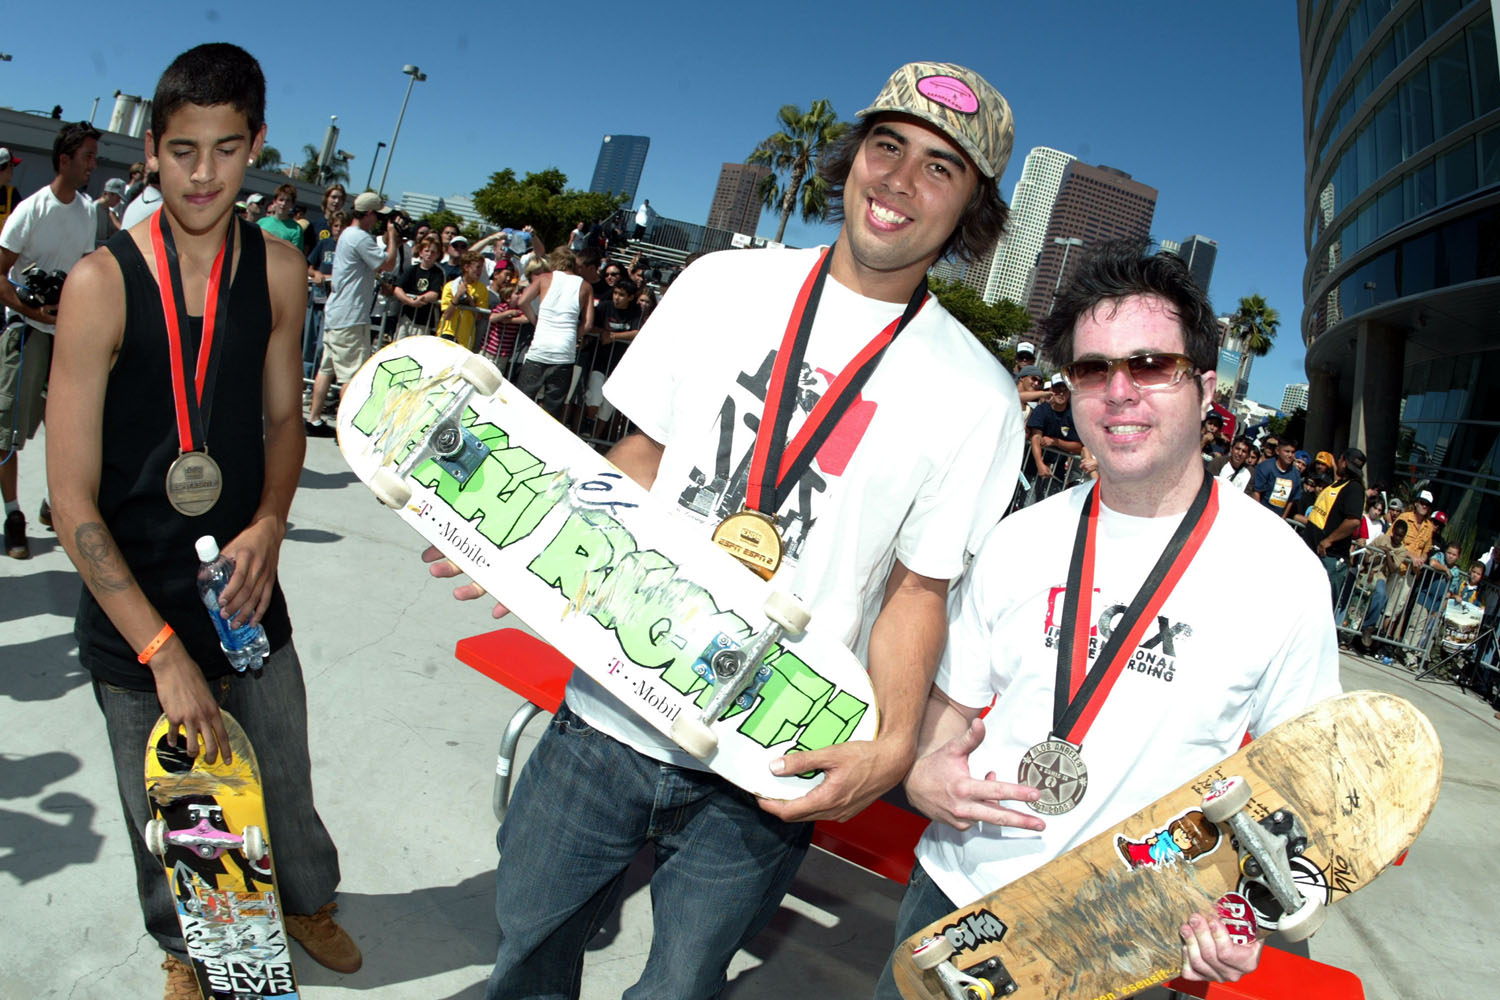 Paul Rodriguez, Eric Koston and Rodil de Araujo, Jr. pose for photographers during the awards ceremony at the X Games 9 Skateboard Street contest held at the Staples Center in Los Angeles, California.